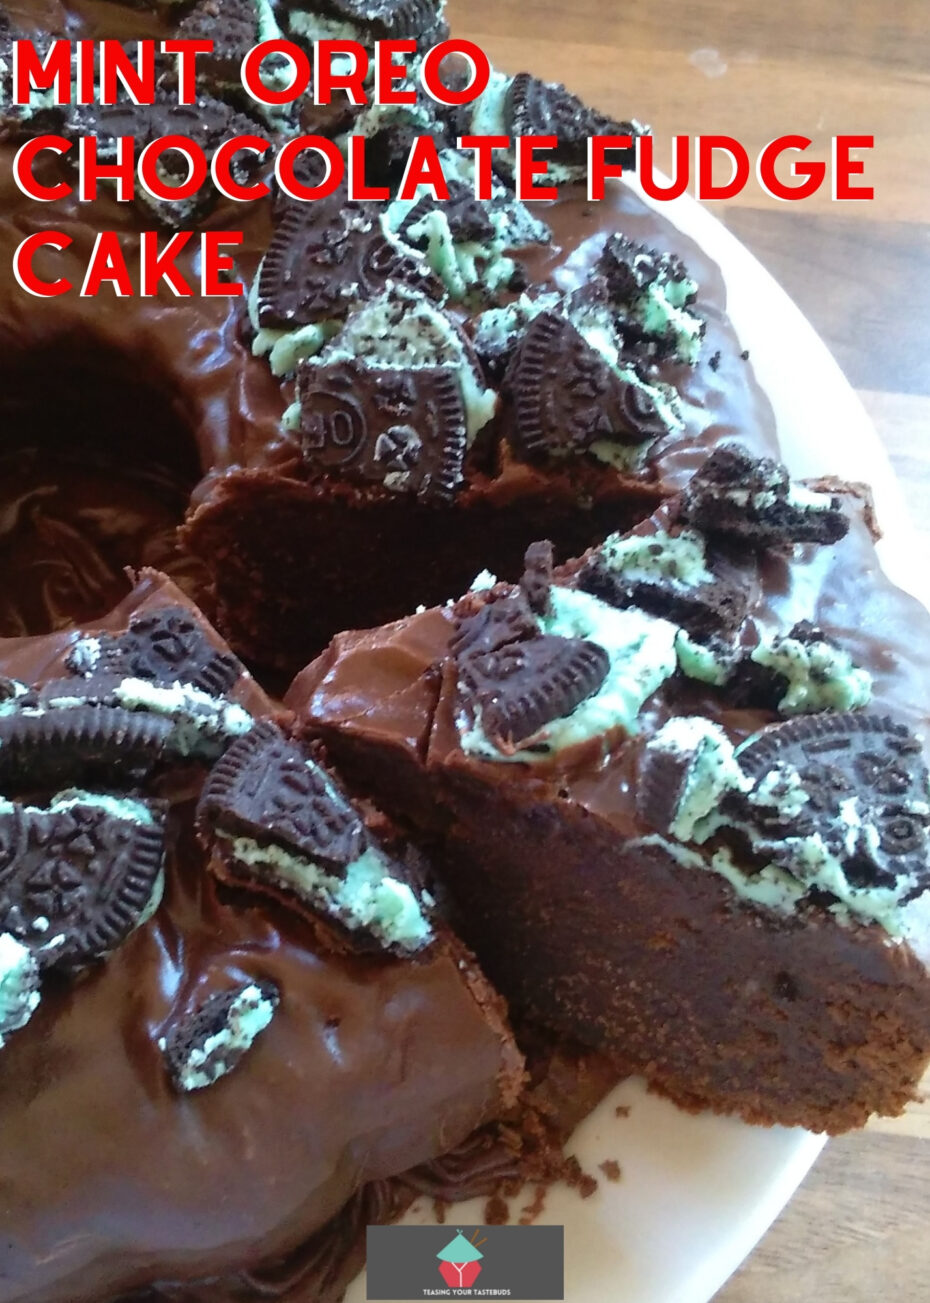 Mint Oreo Chocolate Fudge Cake. A perfect cake for all chocolate lovers! Made from scratch and really easy recipe. Great for parties, pot lucks and celebrations!